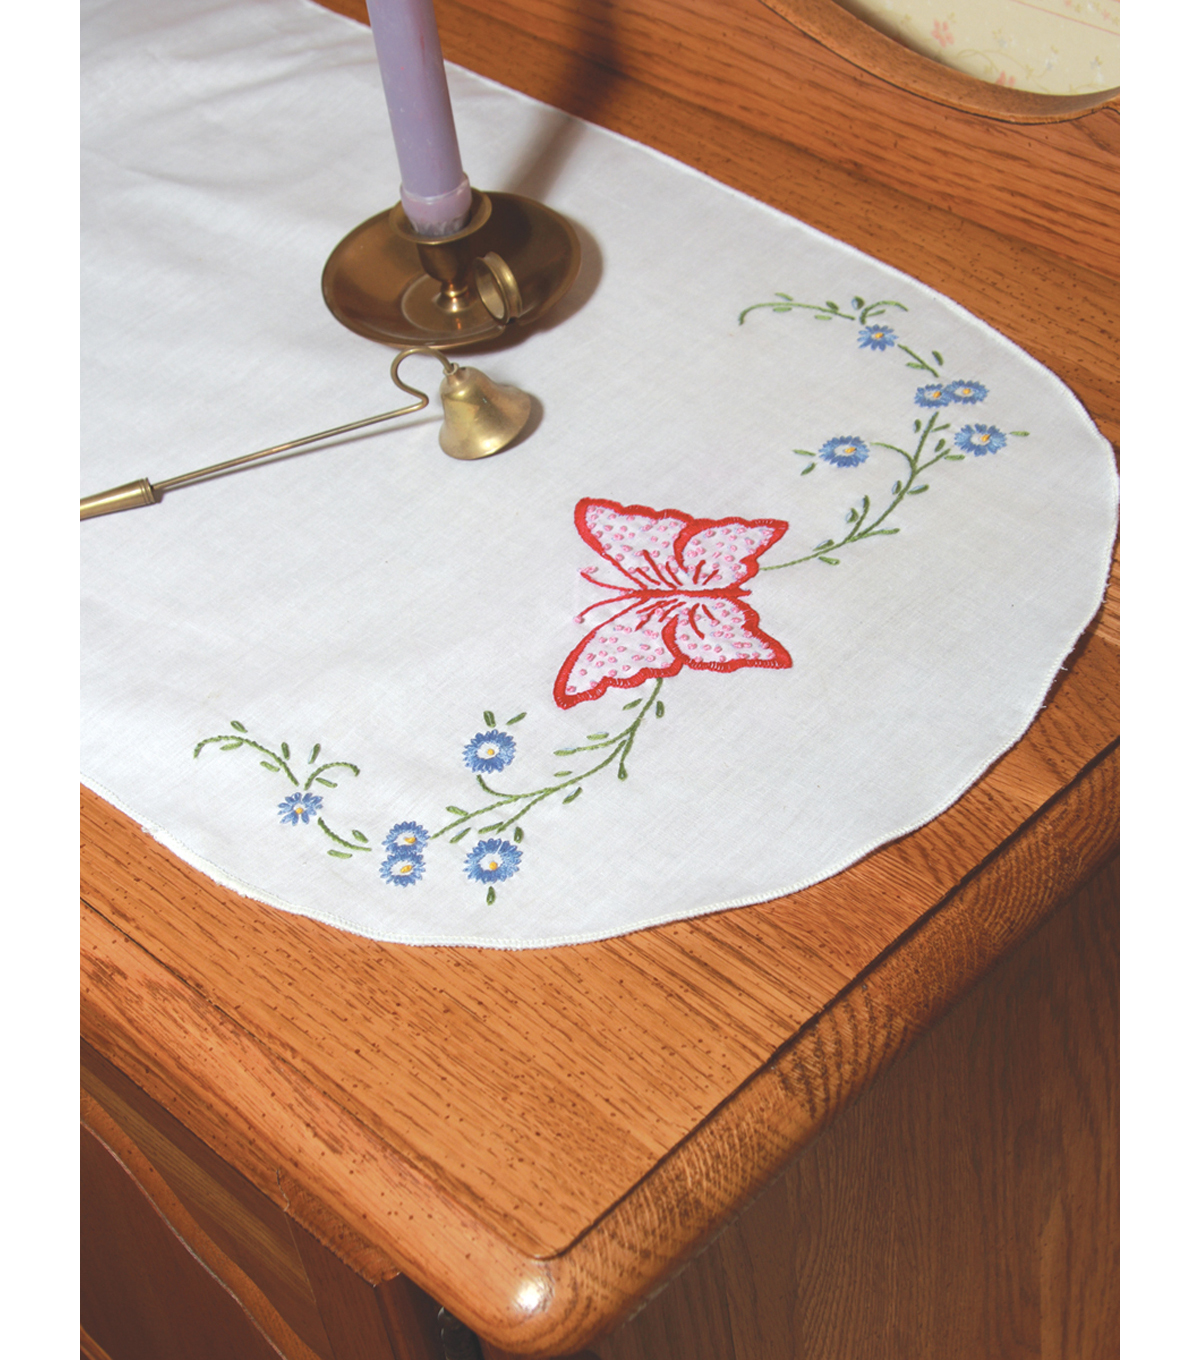 Fairway Stamped Perle Edge Dresser Scarf Daisy Butterfly